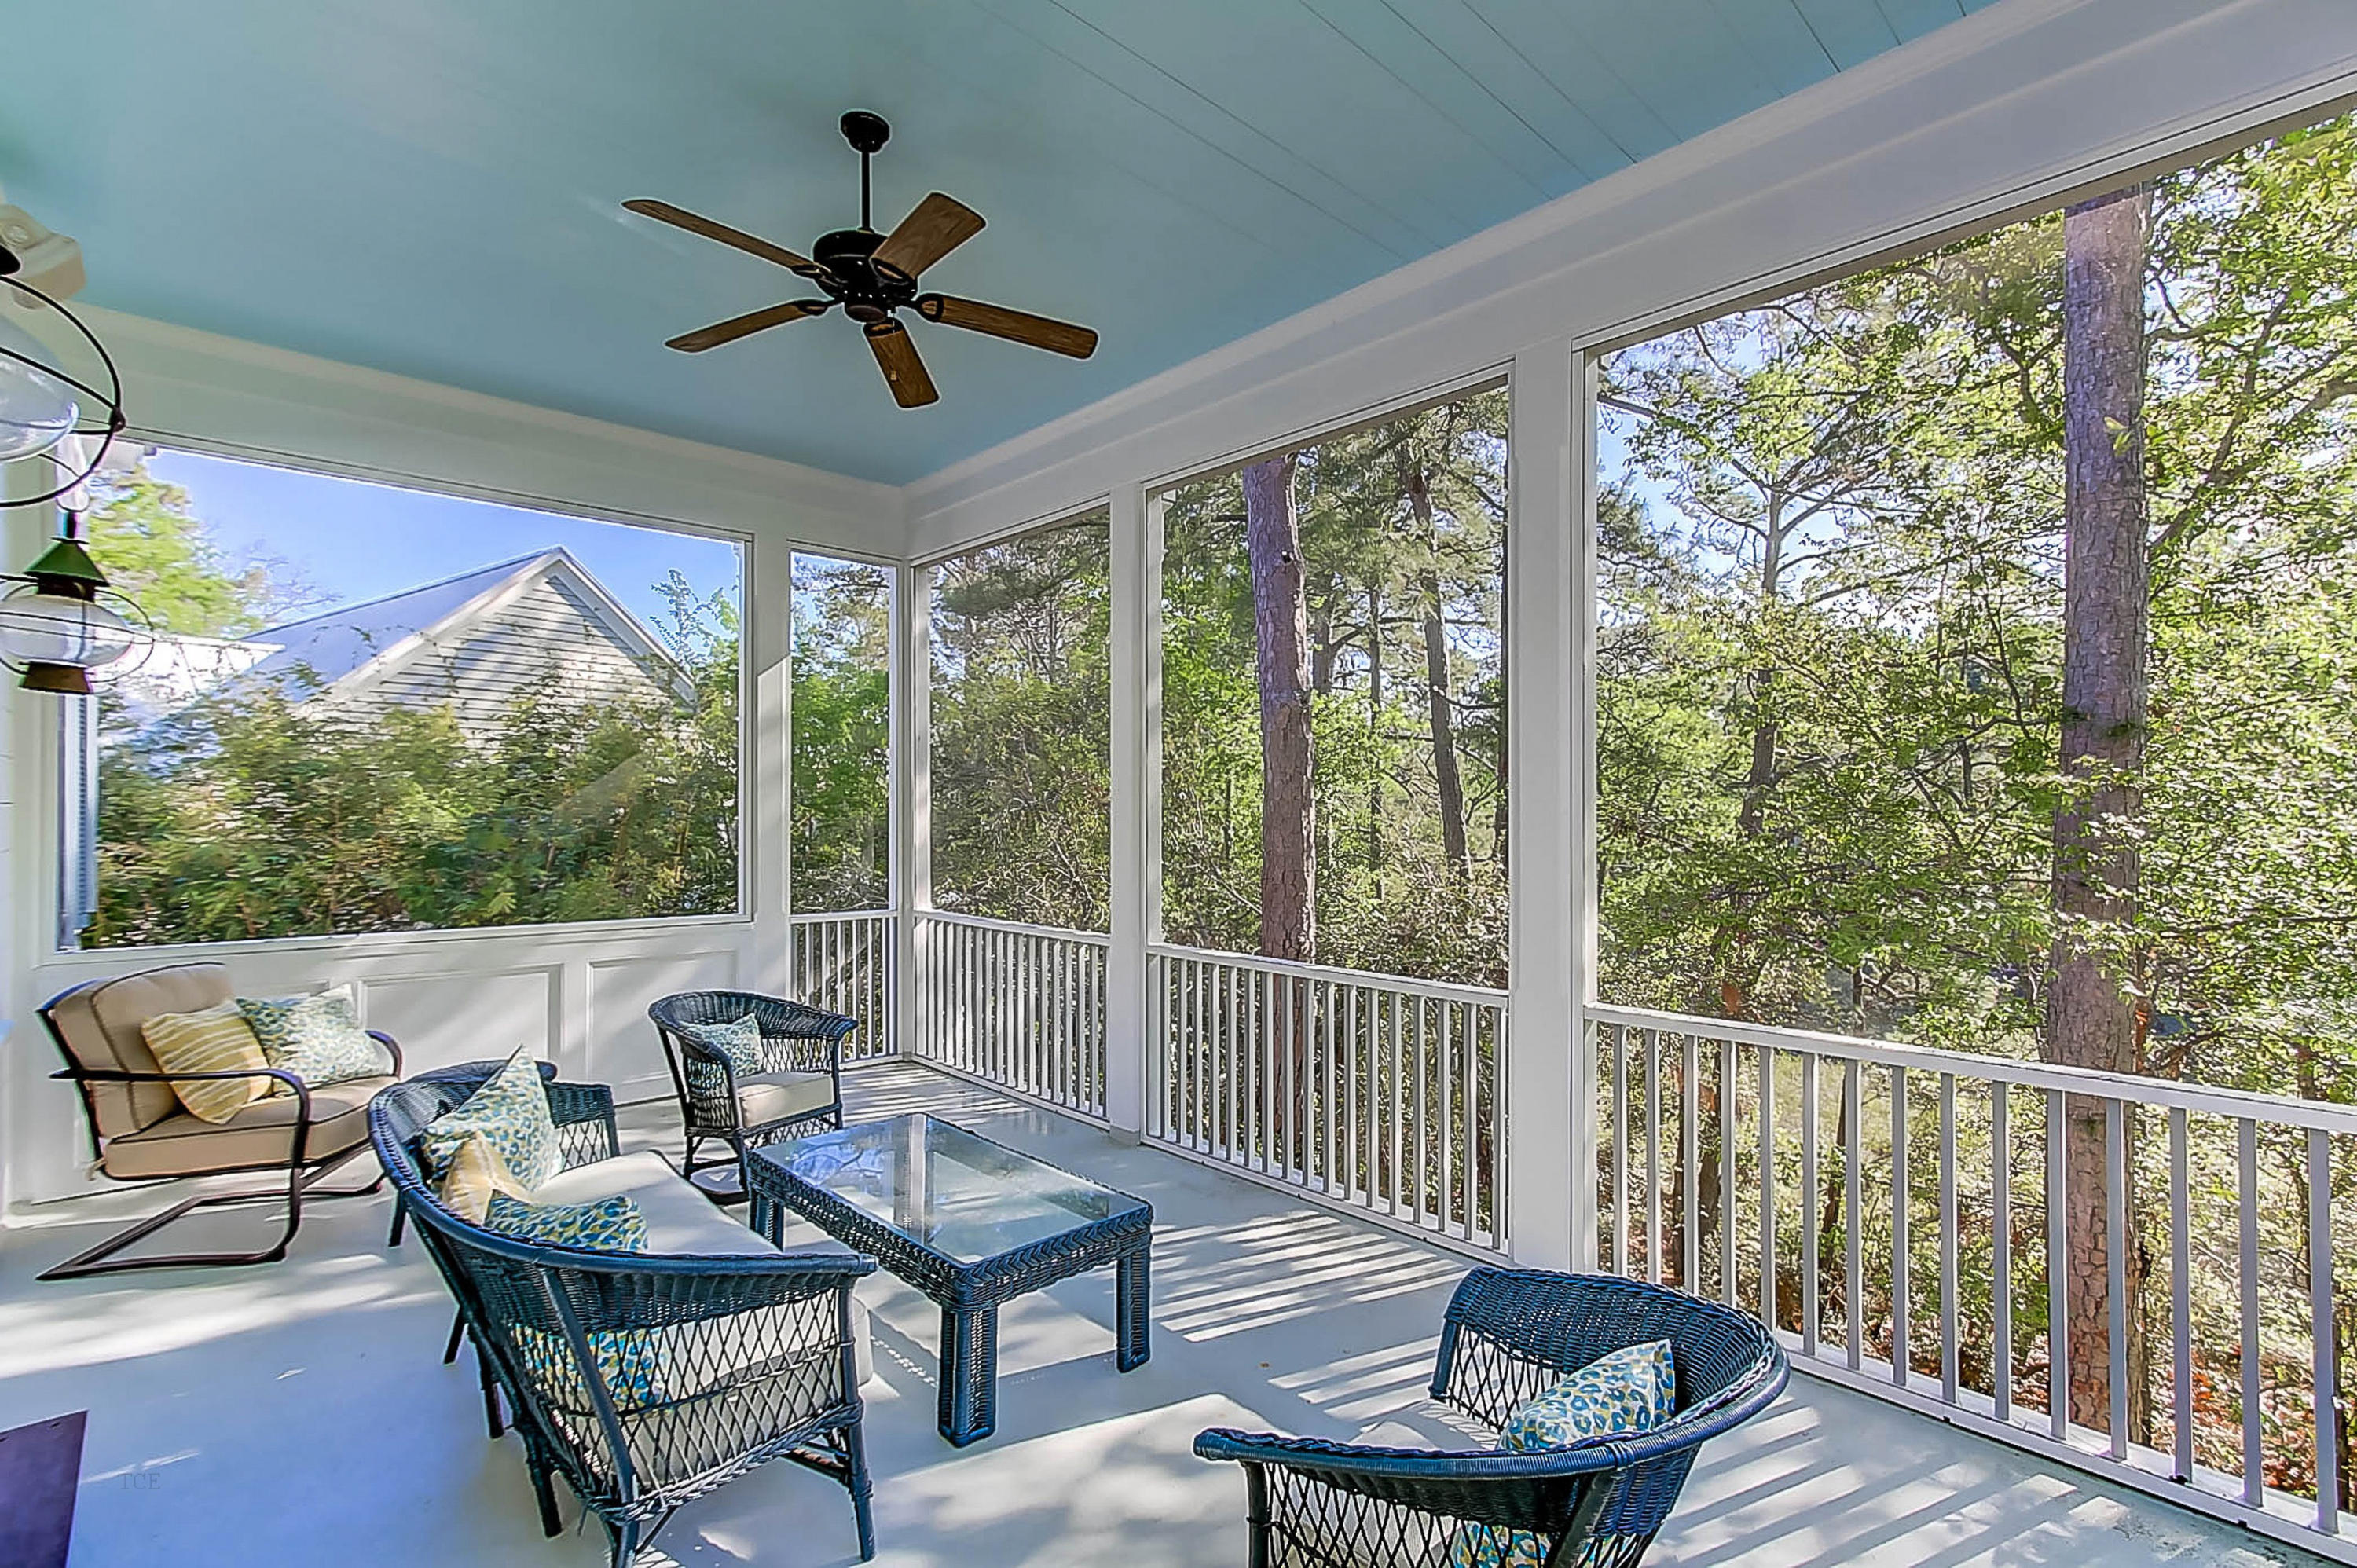 Home for sale 30 Hopetown Road, Ion, Mt. Pleasant, SC